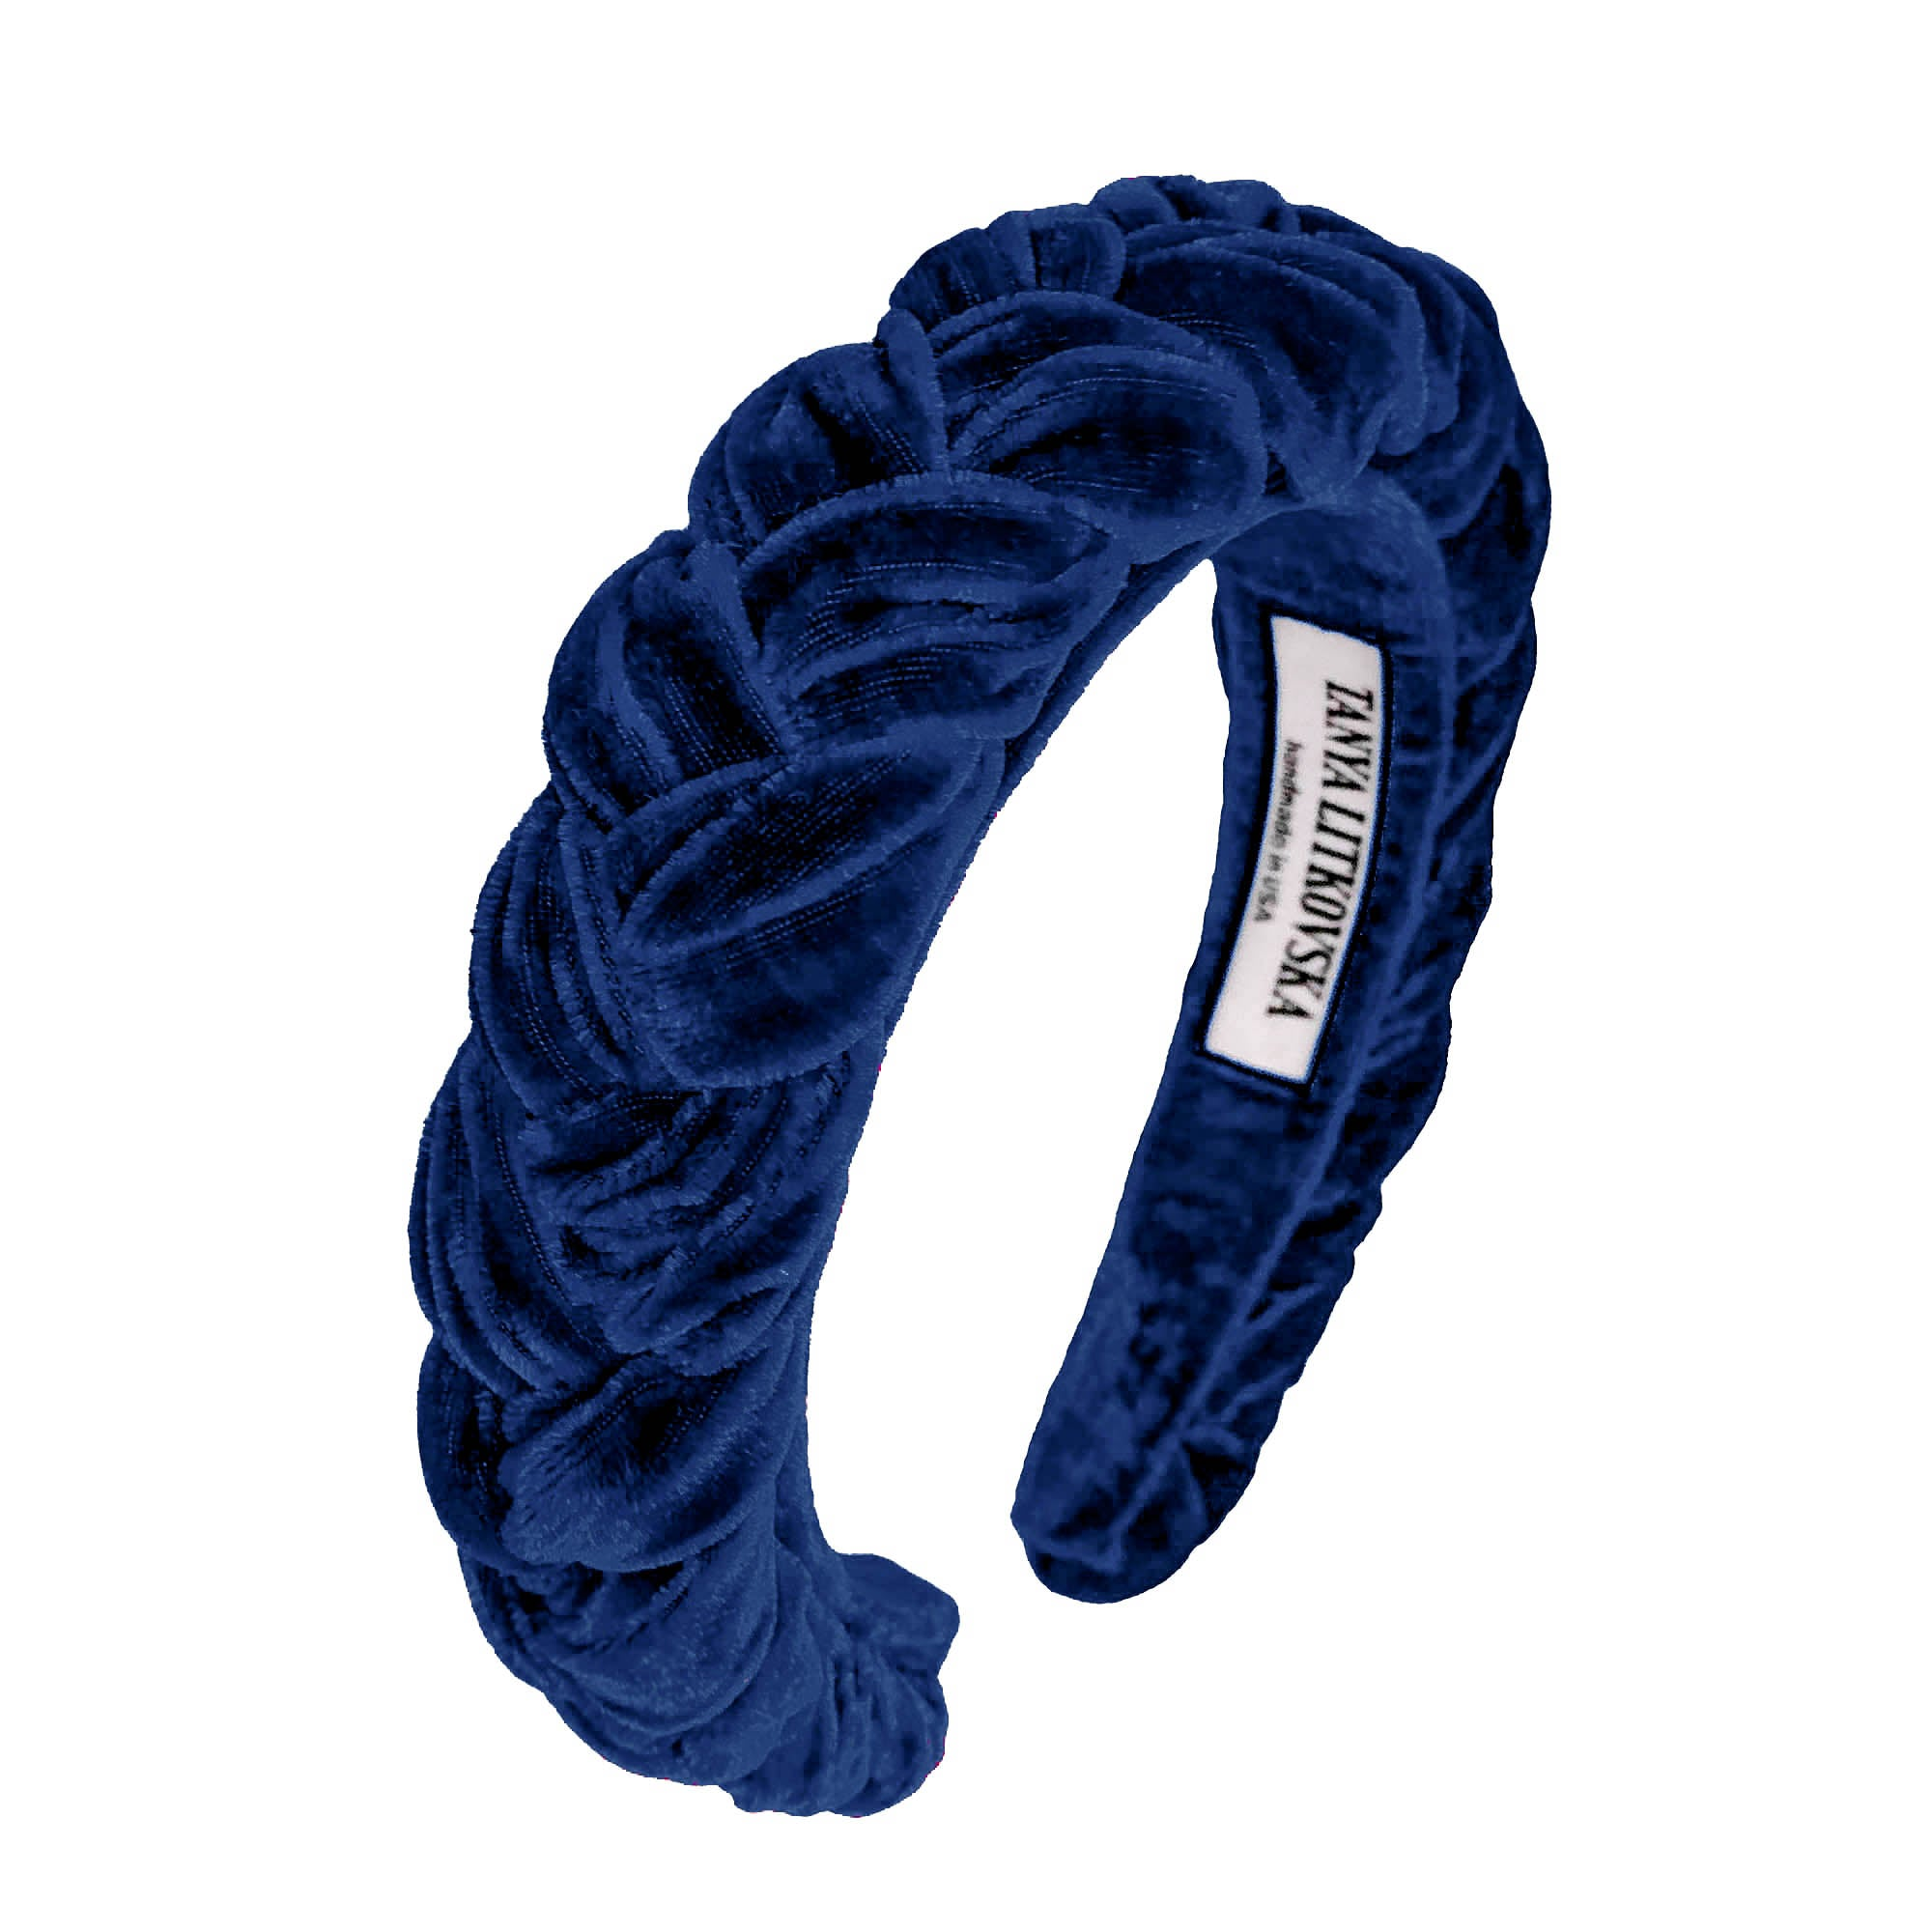 luxury hair accessories | braided velvet headband | navy blue headband by tanya litkovska